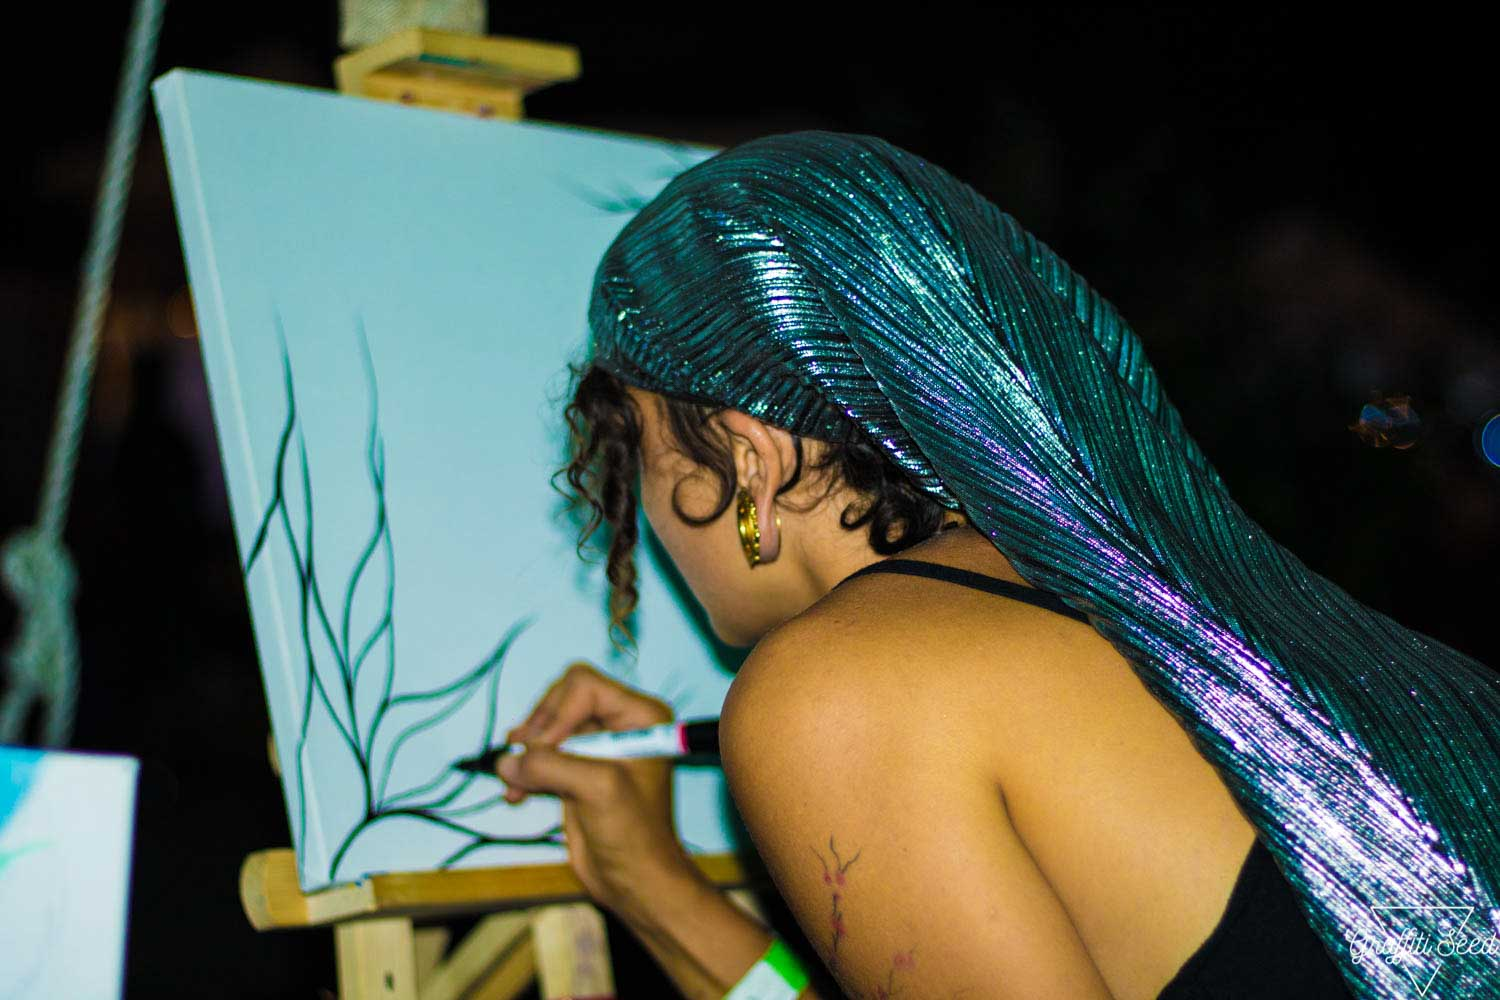 Rootwire Transformational Arts Festival 2018 _ GraffitiSeed.com 164.jpg